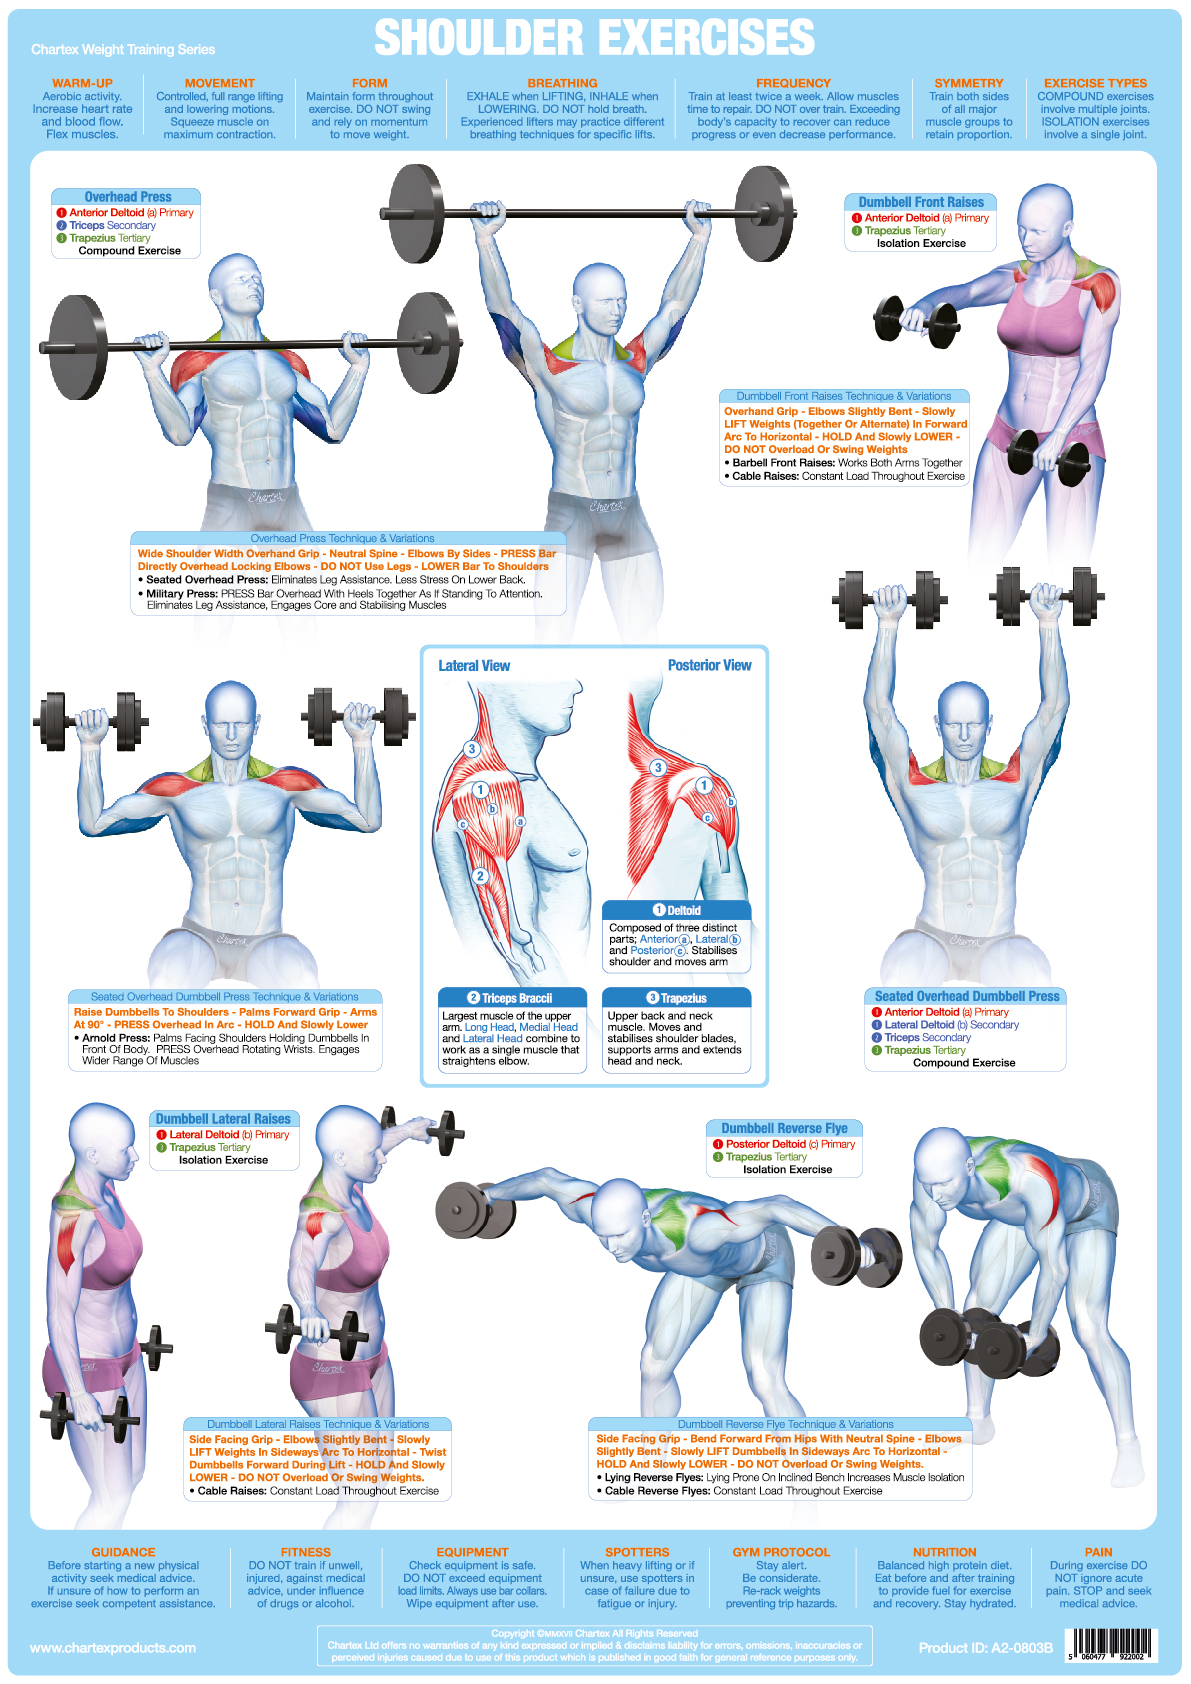 Shoulder Muscles Weight Training